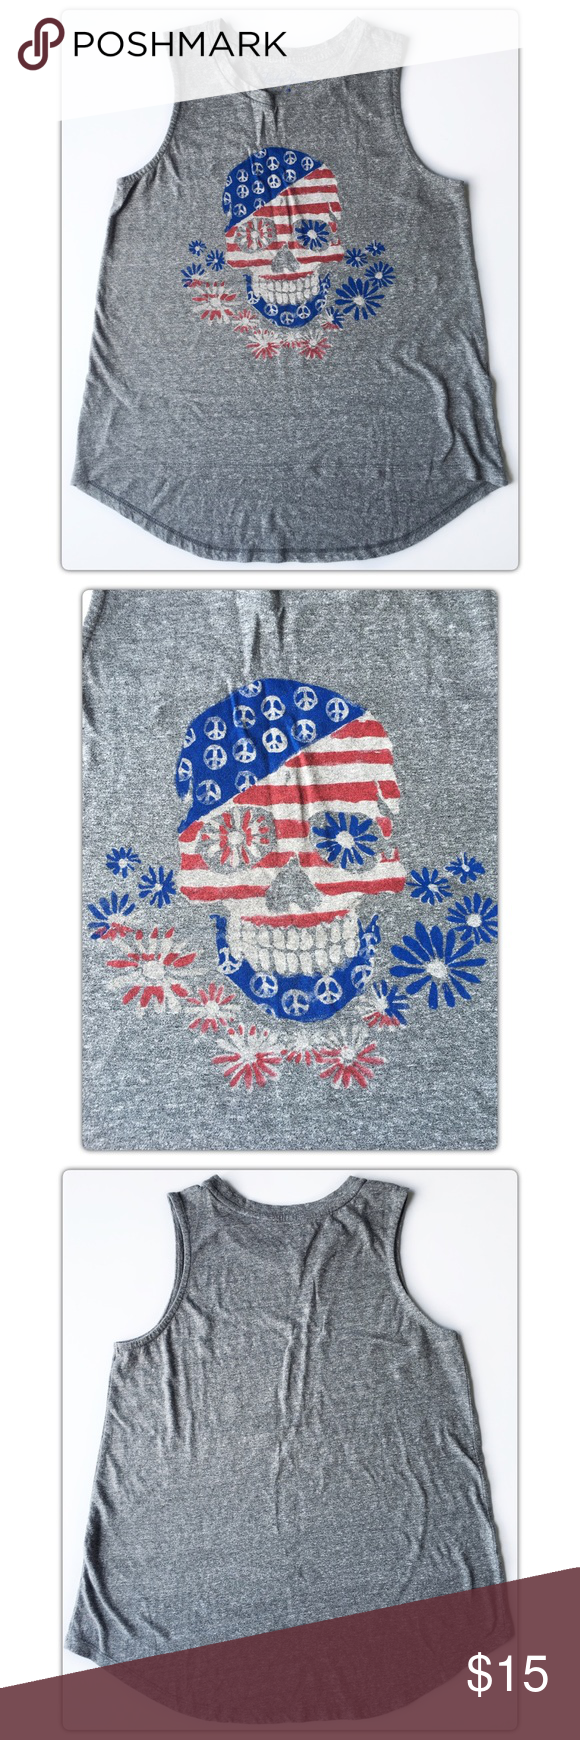 Lucky Brand American Flag Skull Size Medium Lucky Brand  American Flag Skull Tank Top/Muscle Tee Size Medium Loose fit  Excellent Pre-owned condition. Lucky Brand Tops Muscle Tees